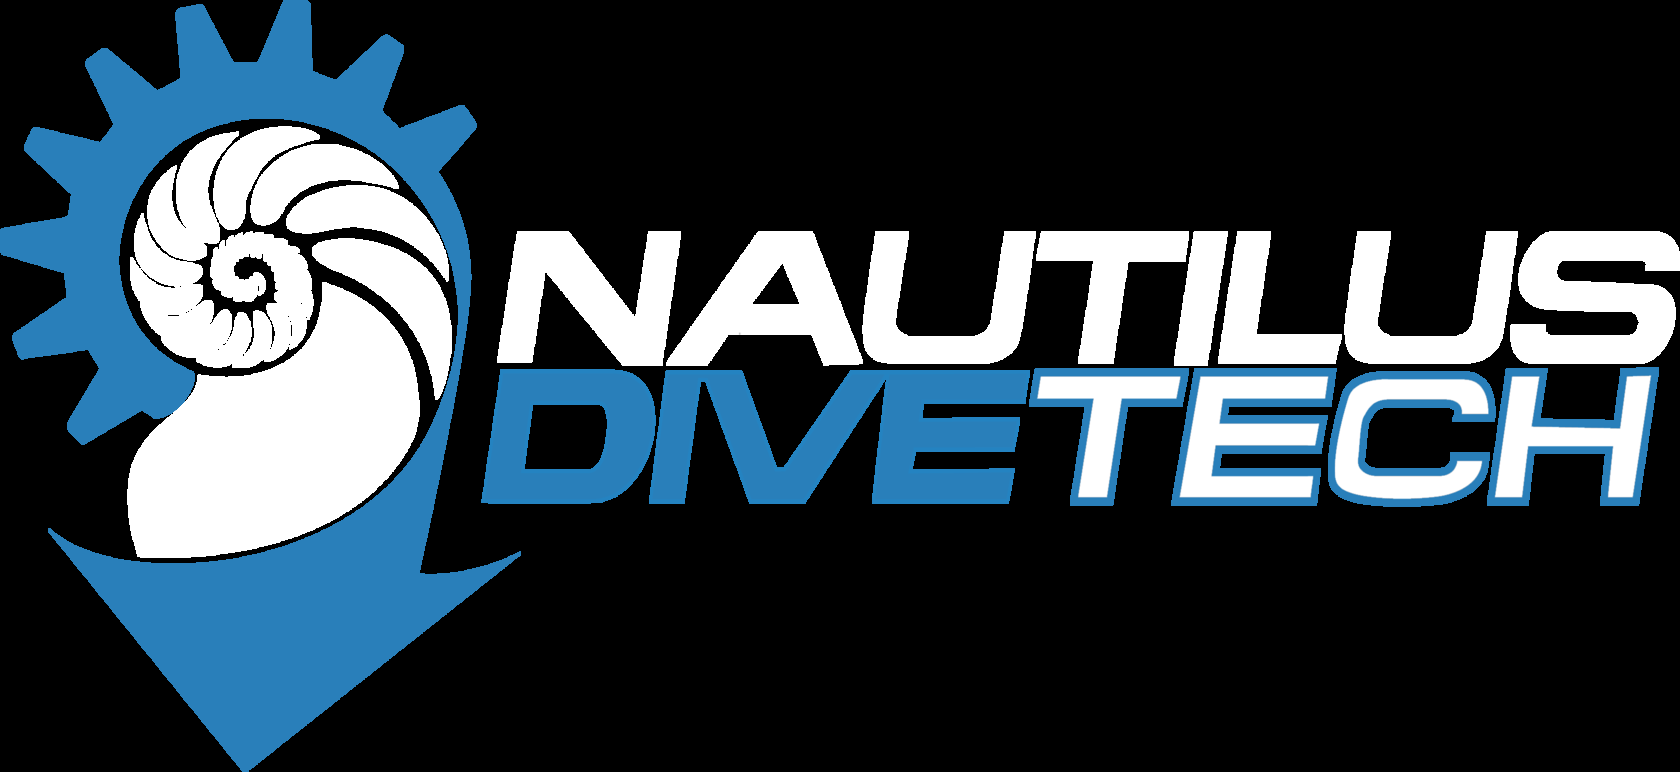 Nautilus Dive Tech